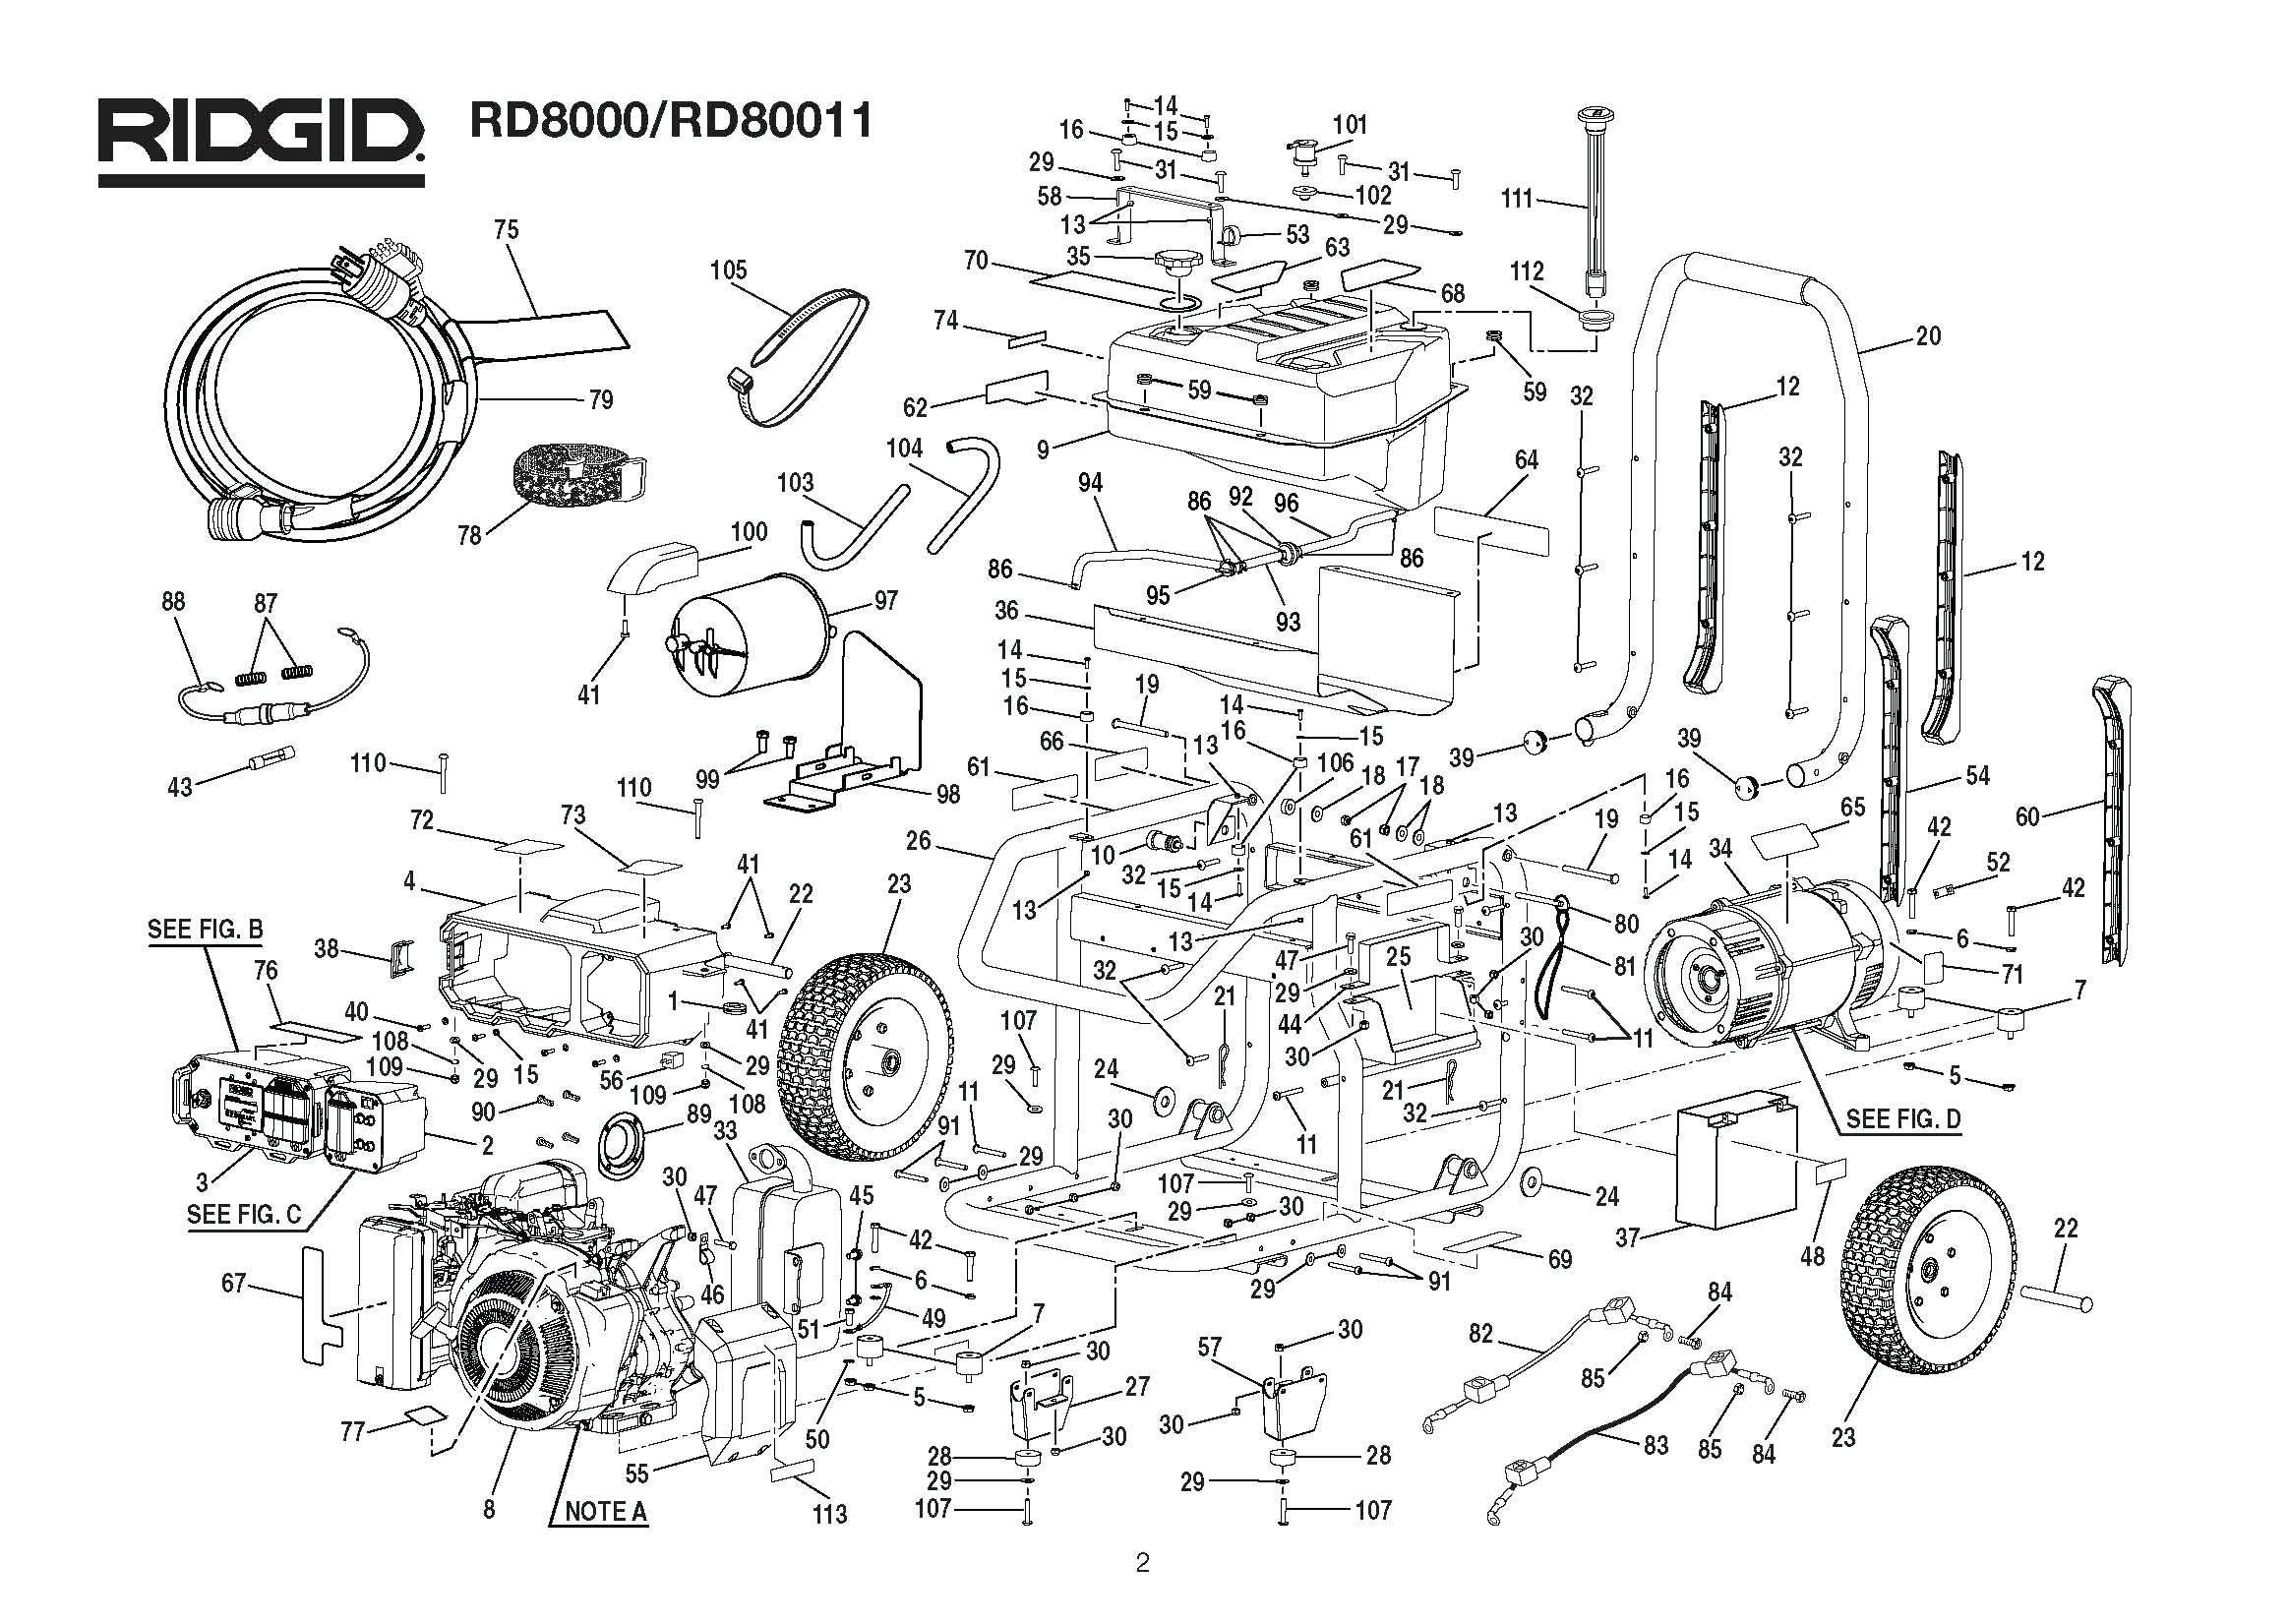 1996 Subaru Legacy Engine Diagram • Wiring Diagram For Free